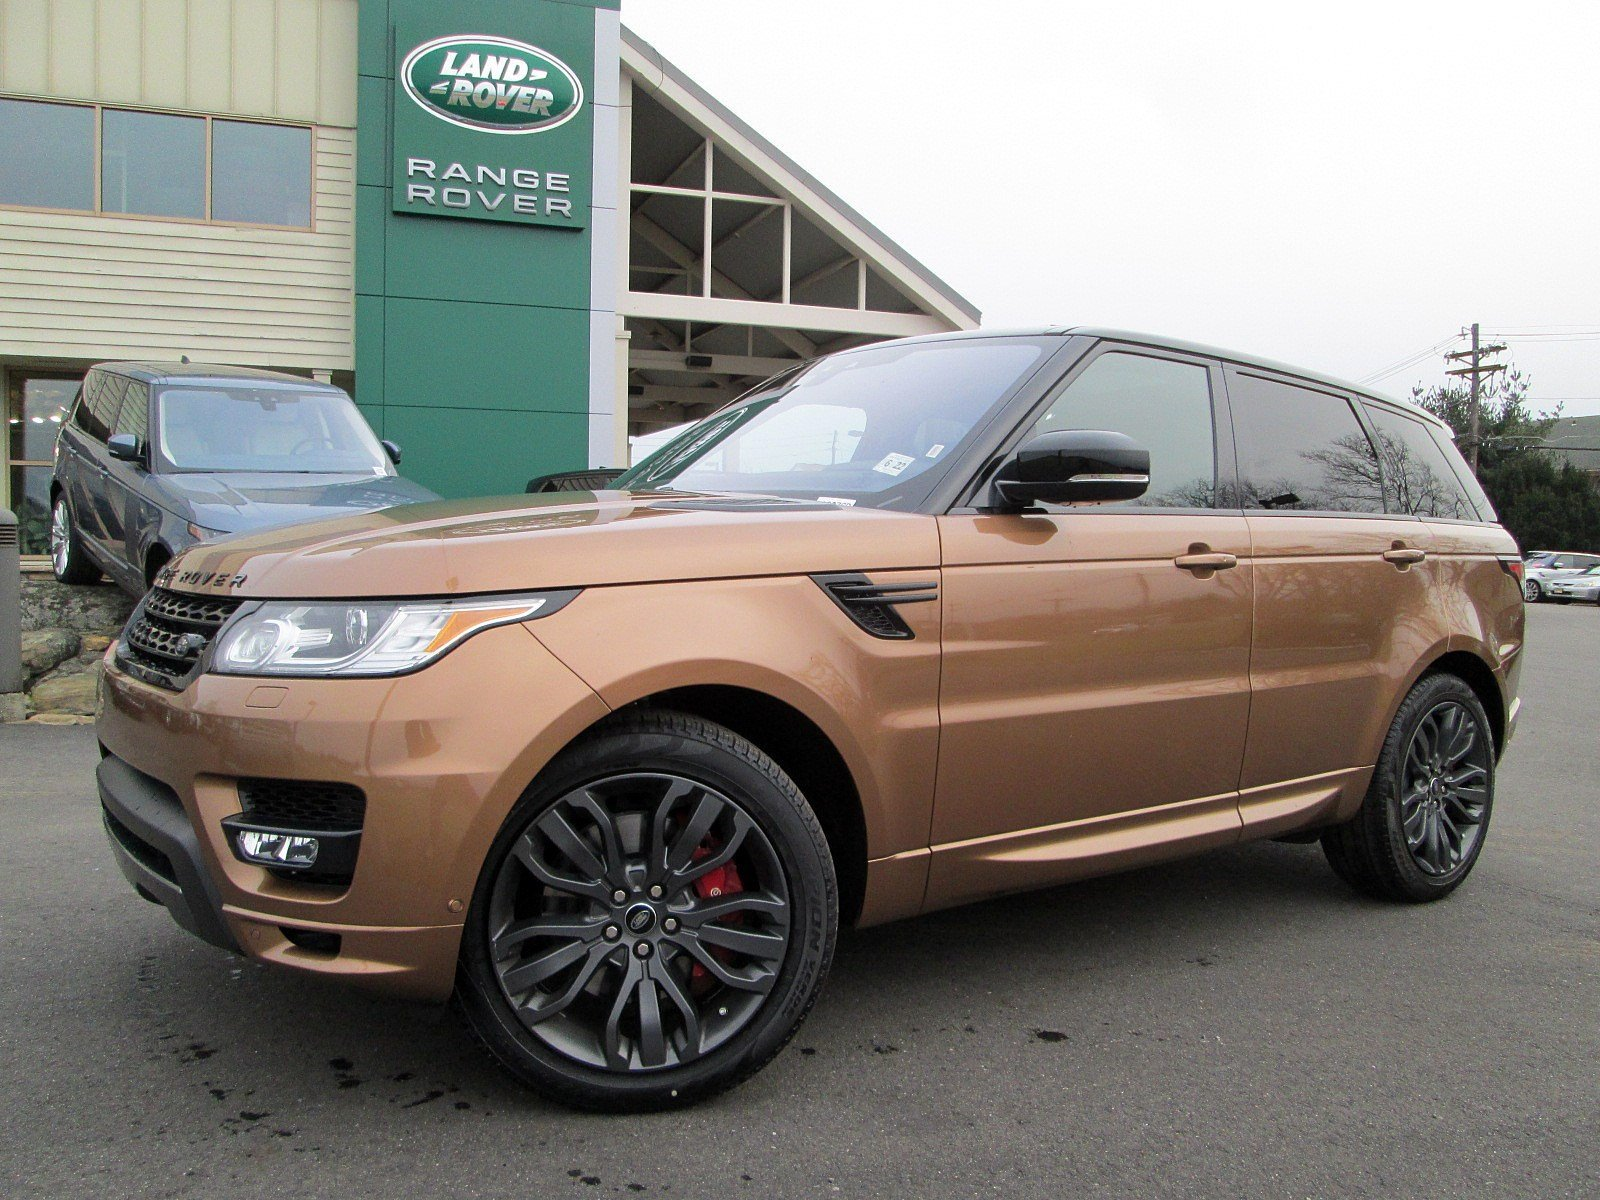 Groovy Certified Pre Owned 2017 Land Rover Range Rover Sport Hse Dynamic 4 Wiring Cloud Xempagosophoxytasticioscodnessplanboapumohammedshrineorg